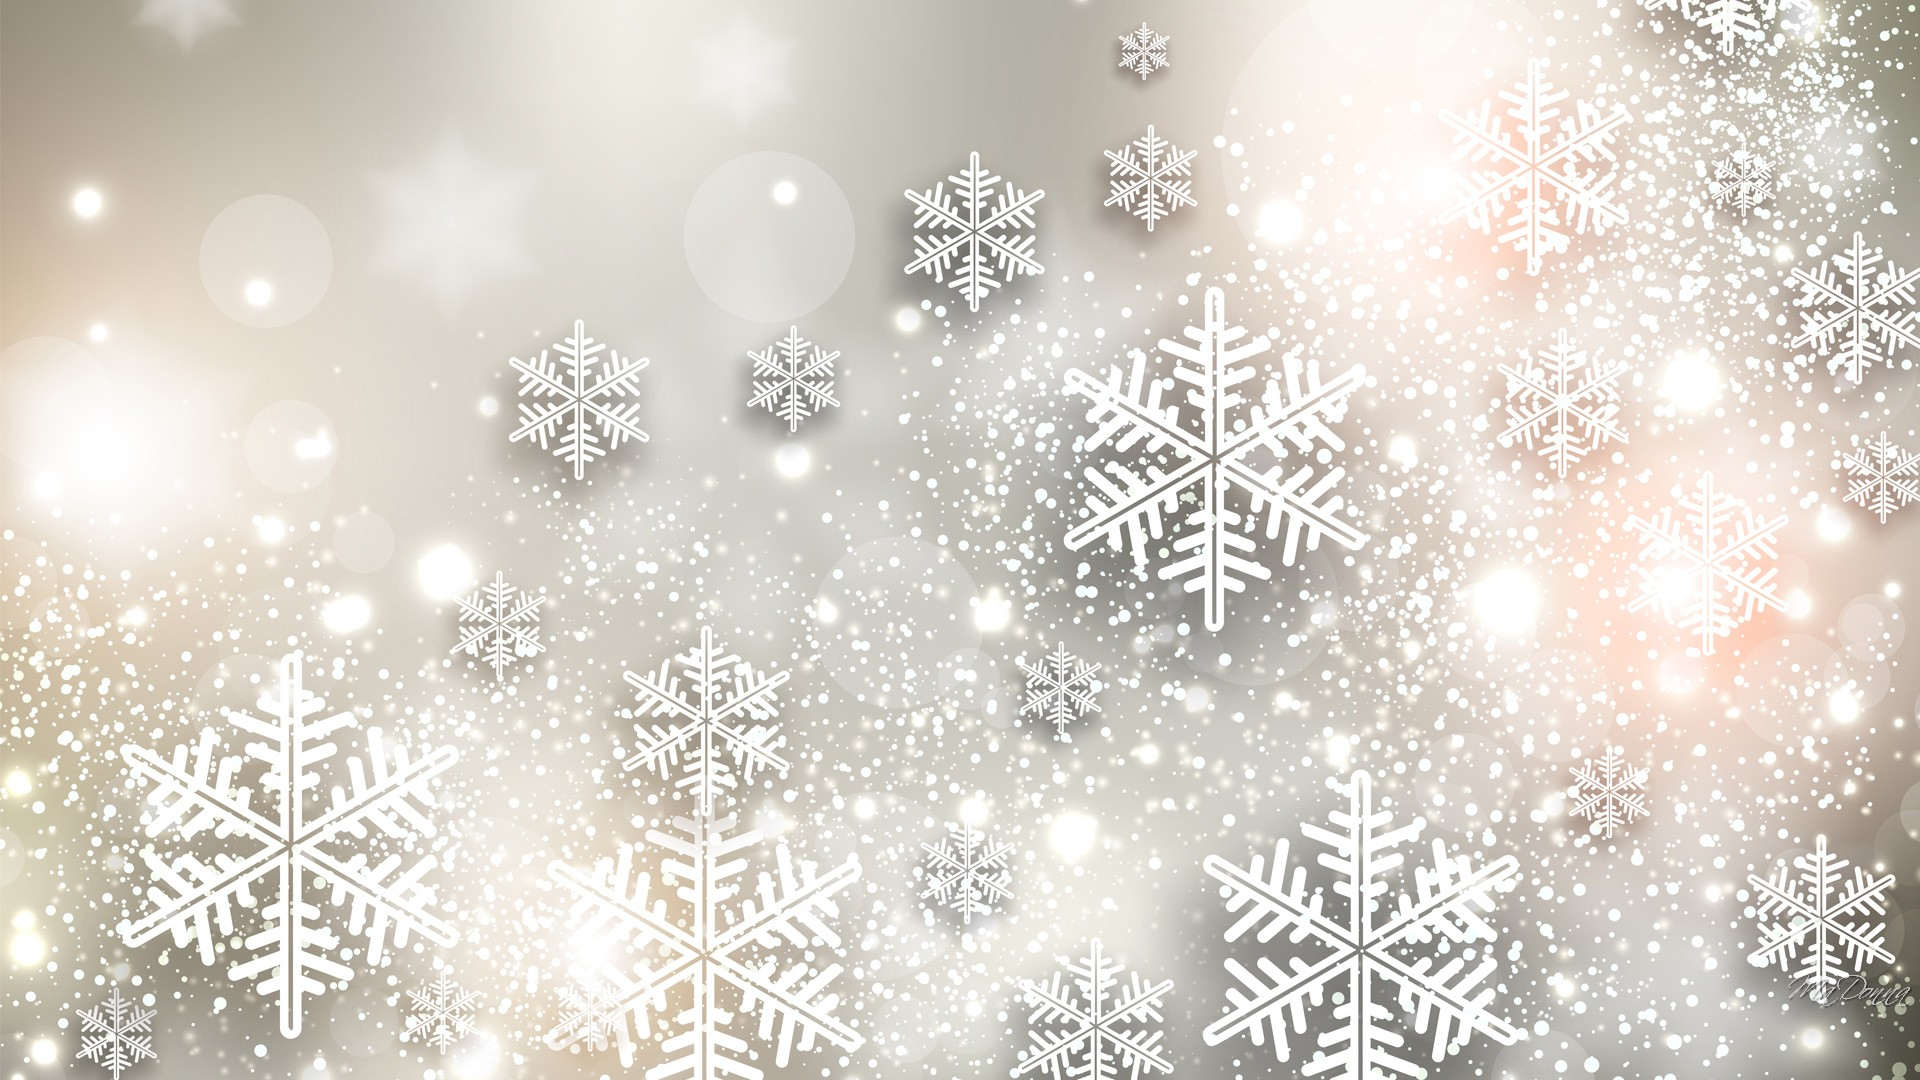 Christmas Background Hd.Index Of Images Bg Img